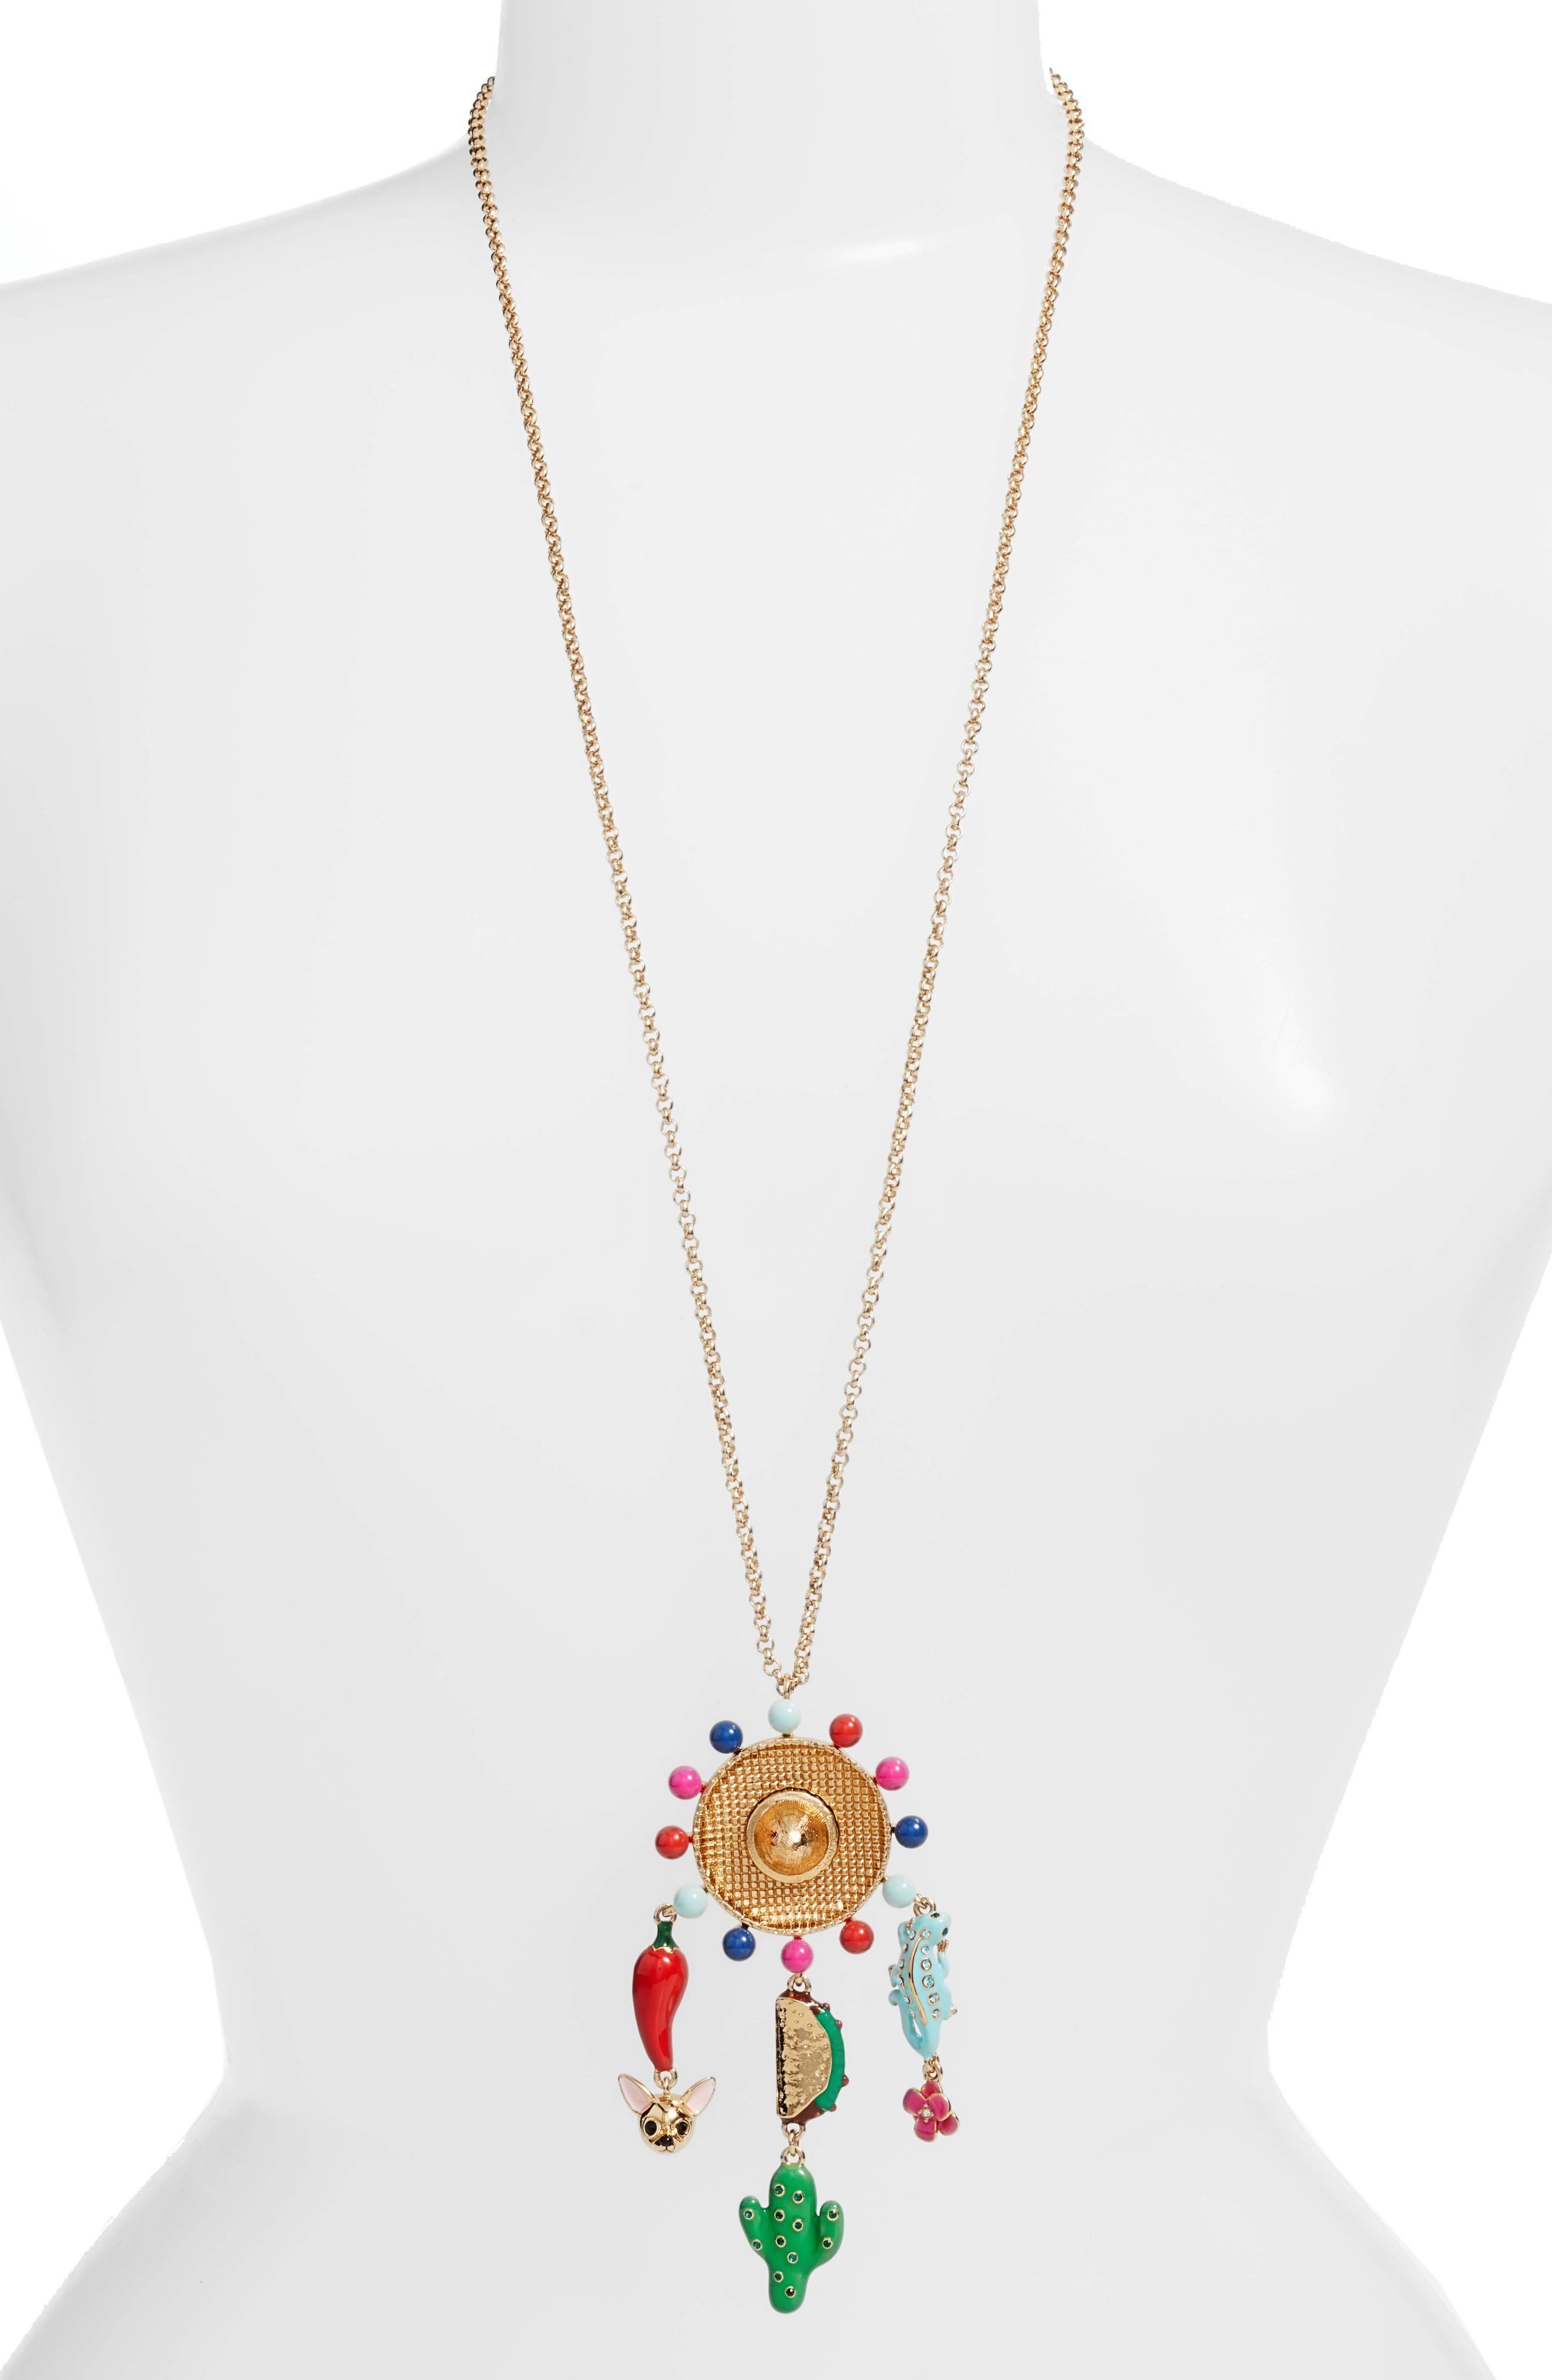 KATE SPADE NEW YORK fiesta pendant necklace